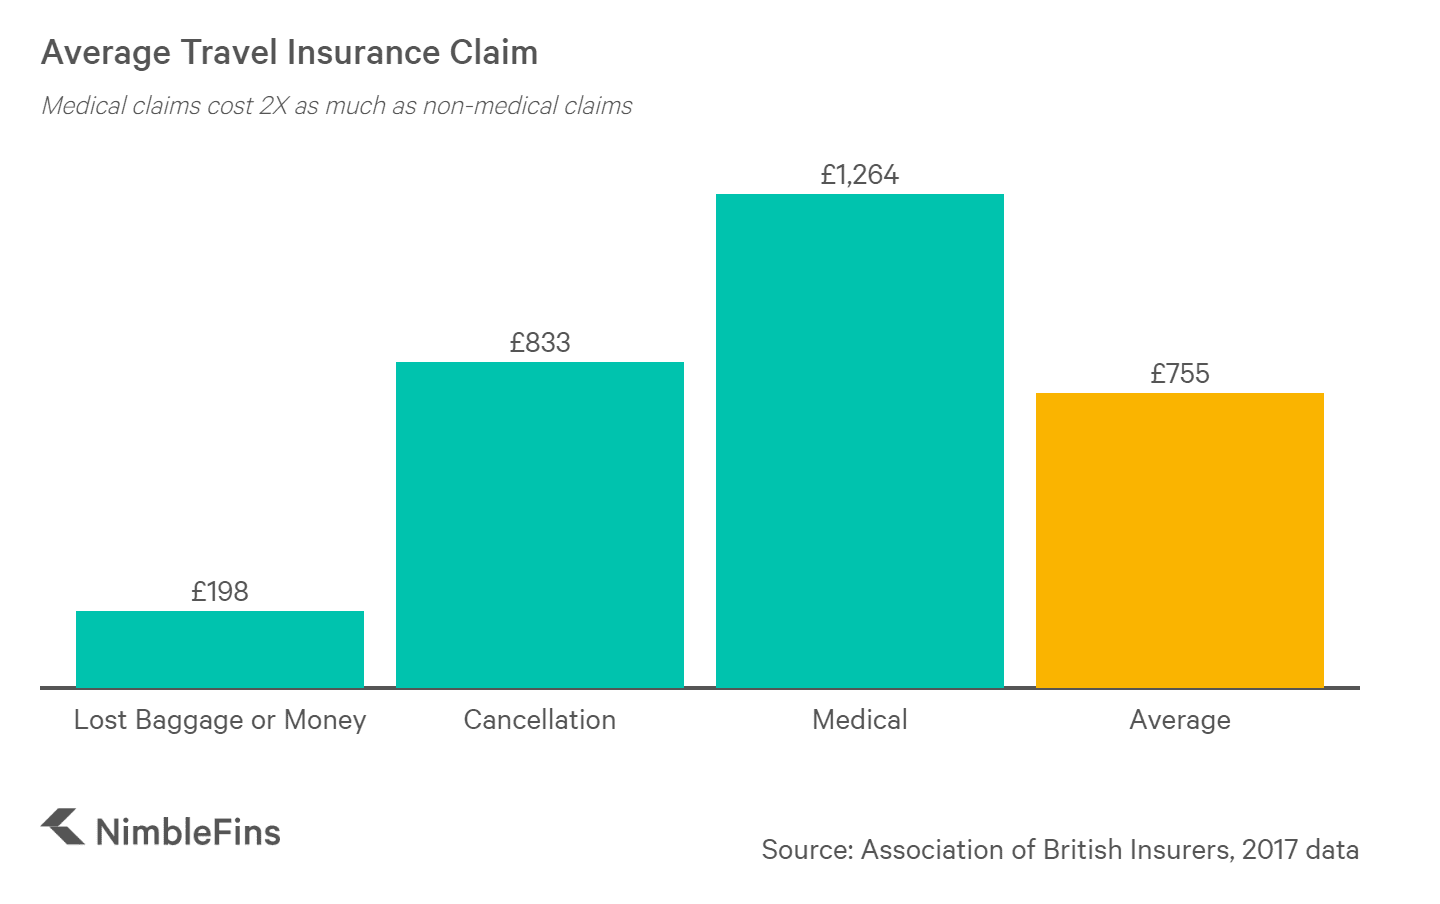 chart showing the average cost of travel insurance claims by type